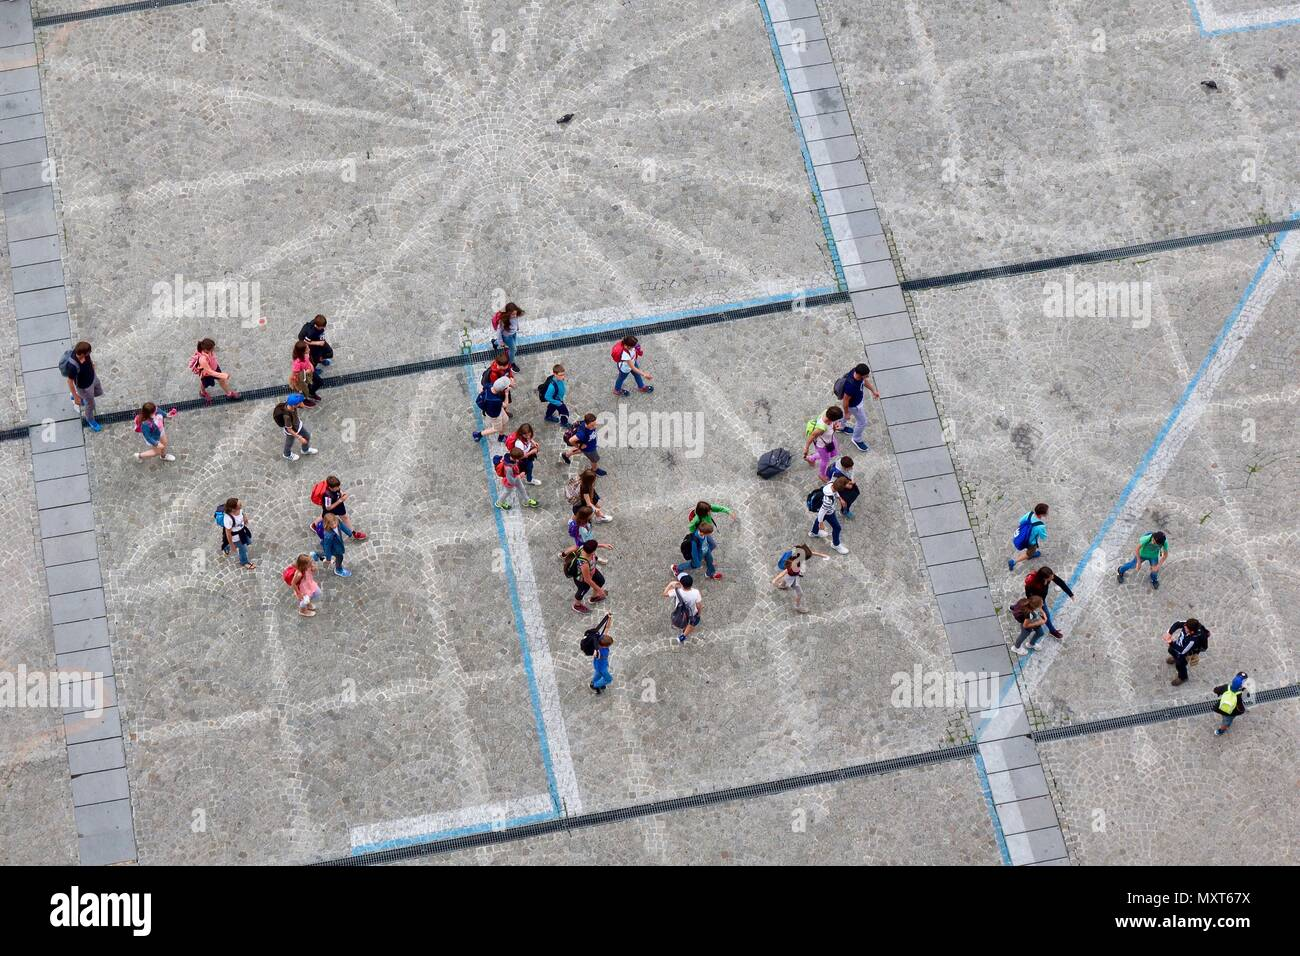 Paris, France. Hot bright sunny spring day, May 2018. School children heading for the Pompidou Centre. Stock Photo